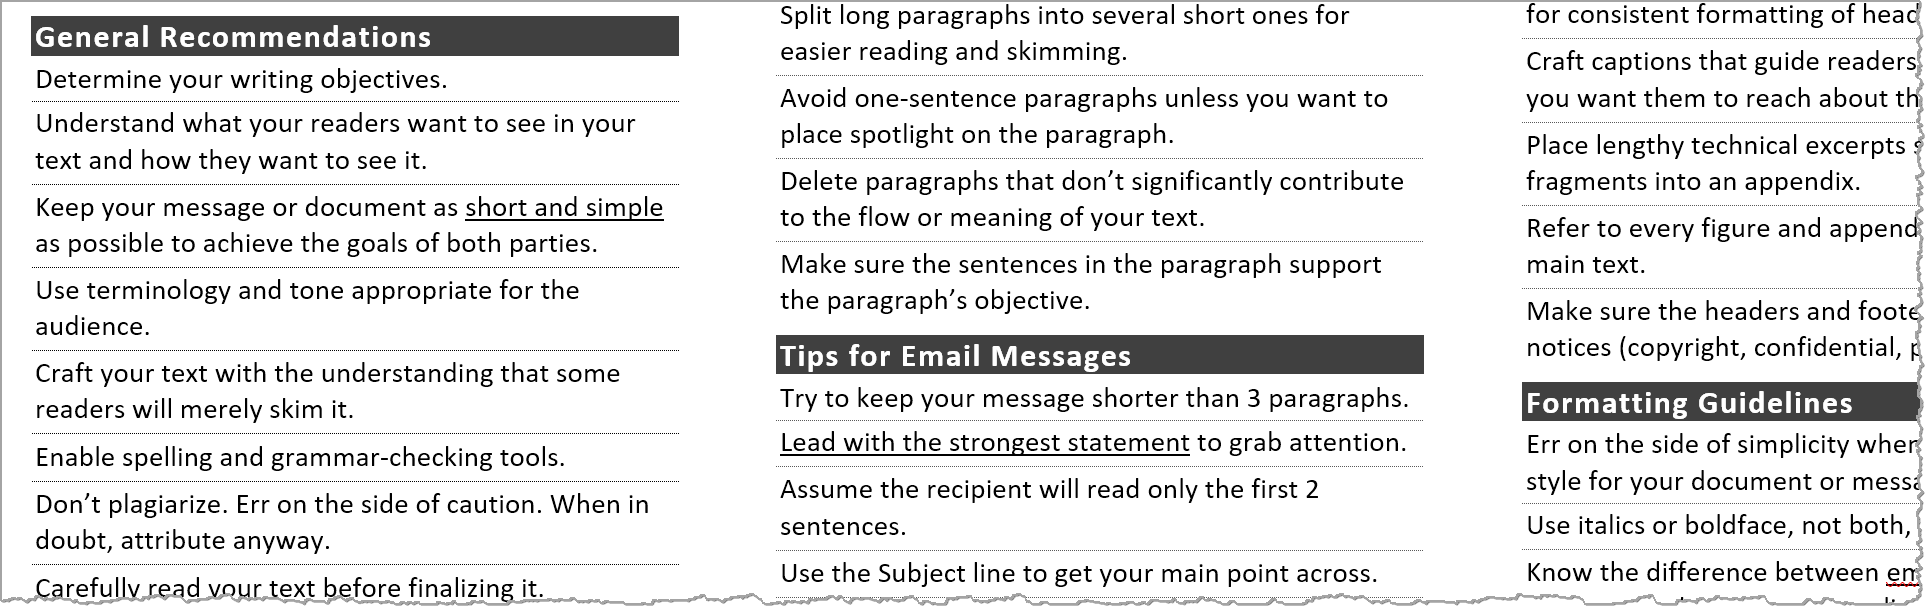 Writing_Tips_for_IT_Professionals.png